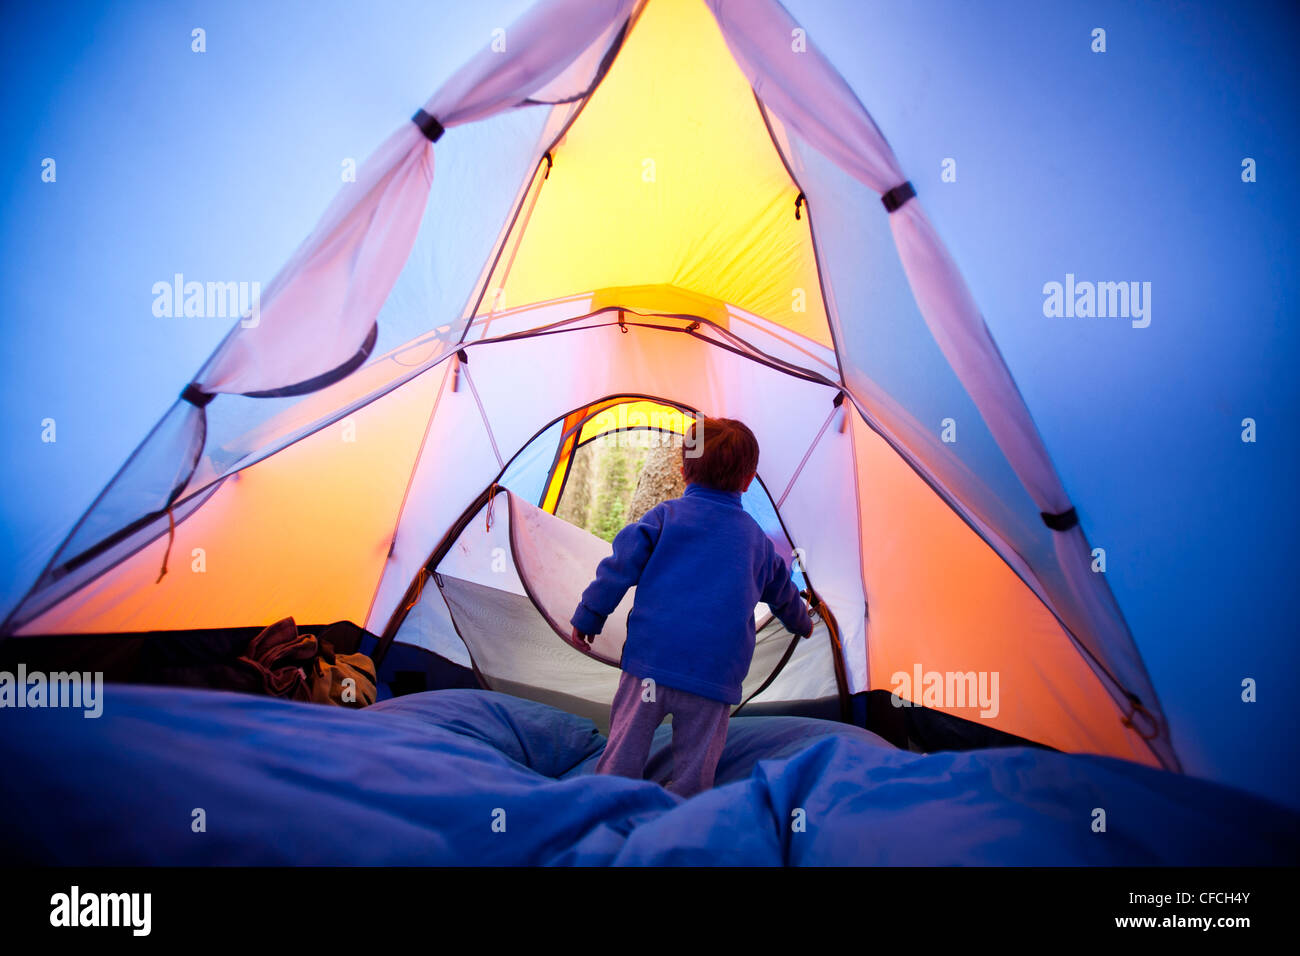 a little boy opens and closes the zippered tent door while he stand on a blue sleeping bag. The tent is orange and - Stock Image